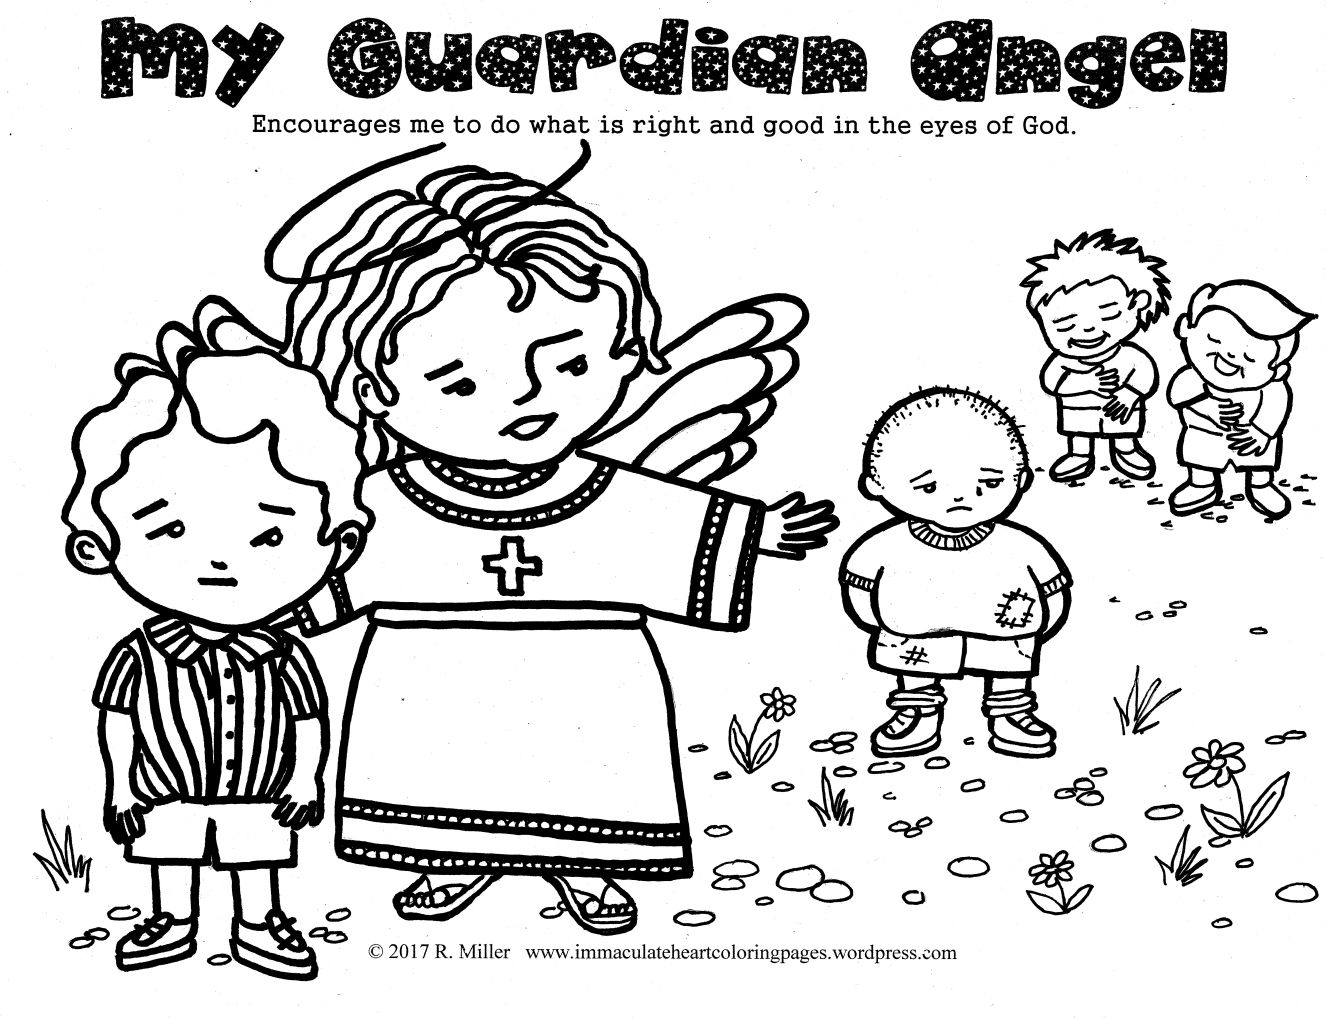 guardian angel prayer coloring pages   My Guardian Angel Coloring Page   Angel coloring pages ...